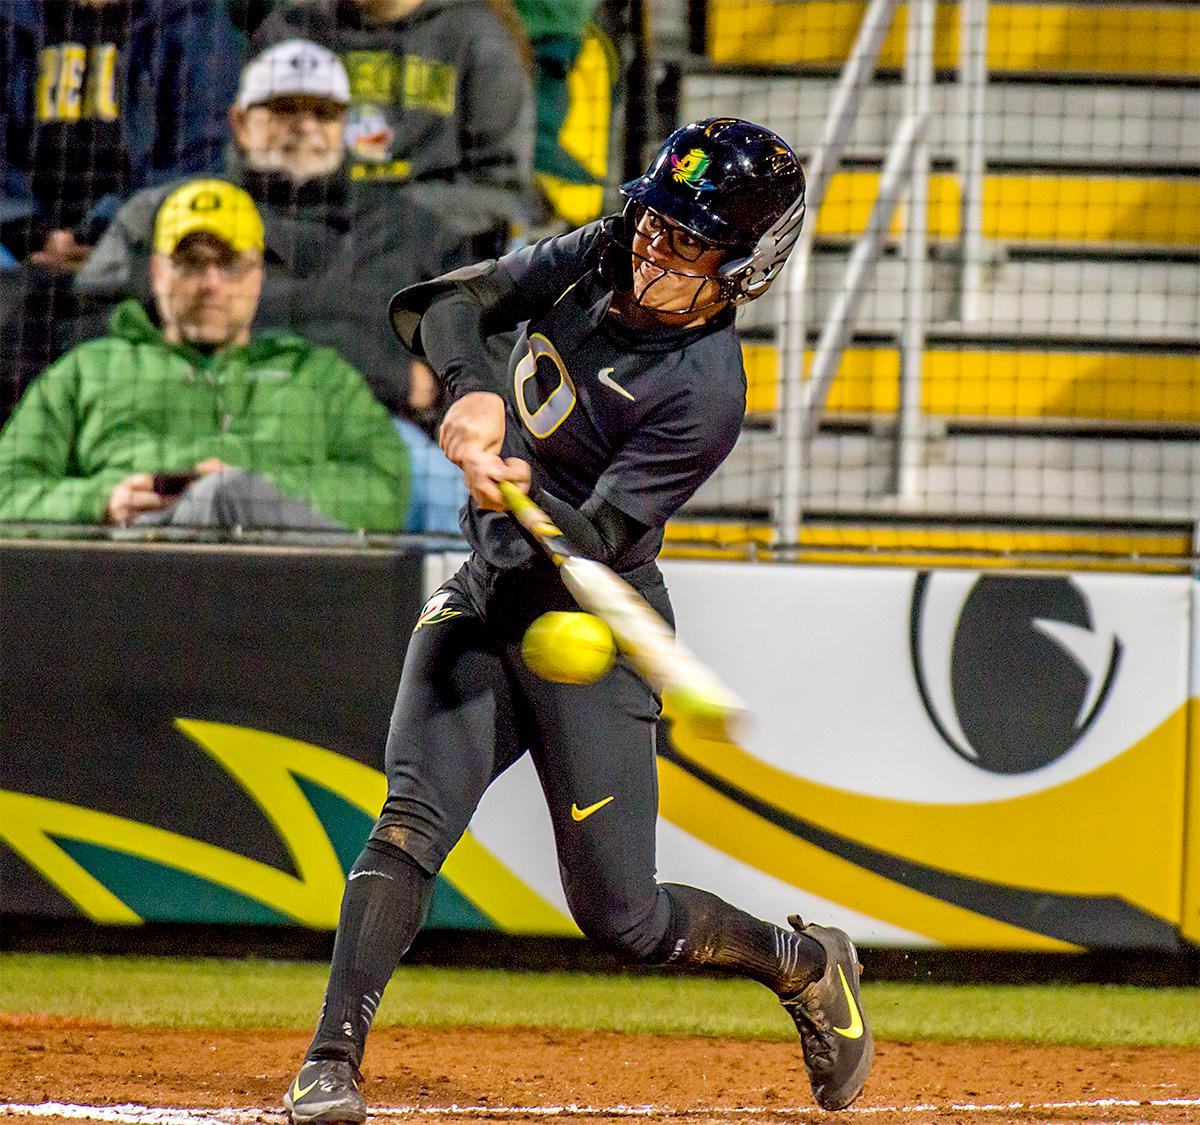 The Duck's Danica Mercado (#2) connects with the ball. In Game Two of a three-game series, the University of Oregon Ducks softball team defeated the University of Washington Huskies 4-1 Friday night in Jane Sanders Stadium. Danica Mercado (#2), Alexis Mack (#10) and Mia Camuso (#7) all scored in the win, Mack twice. The Ducks play the Huskies for the tie breaker on Saturday with the first pitch at noon. Photo by August Frank, Oregon News Lab